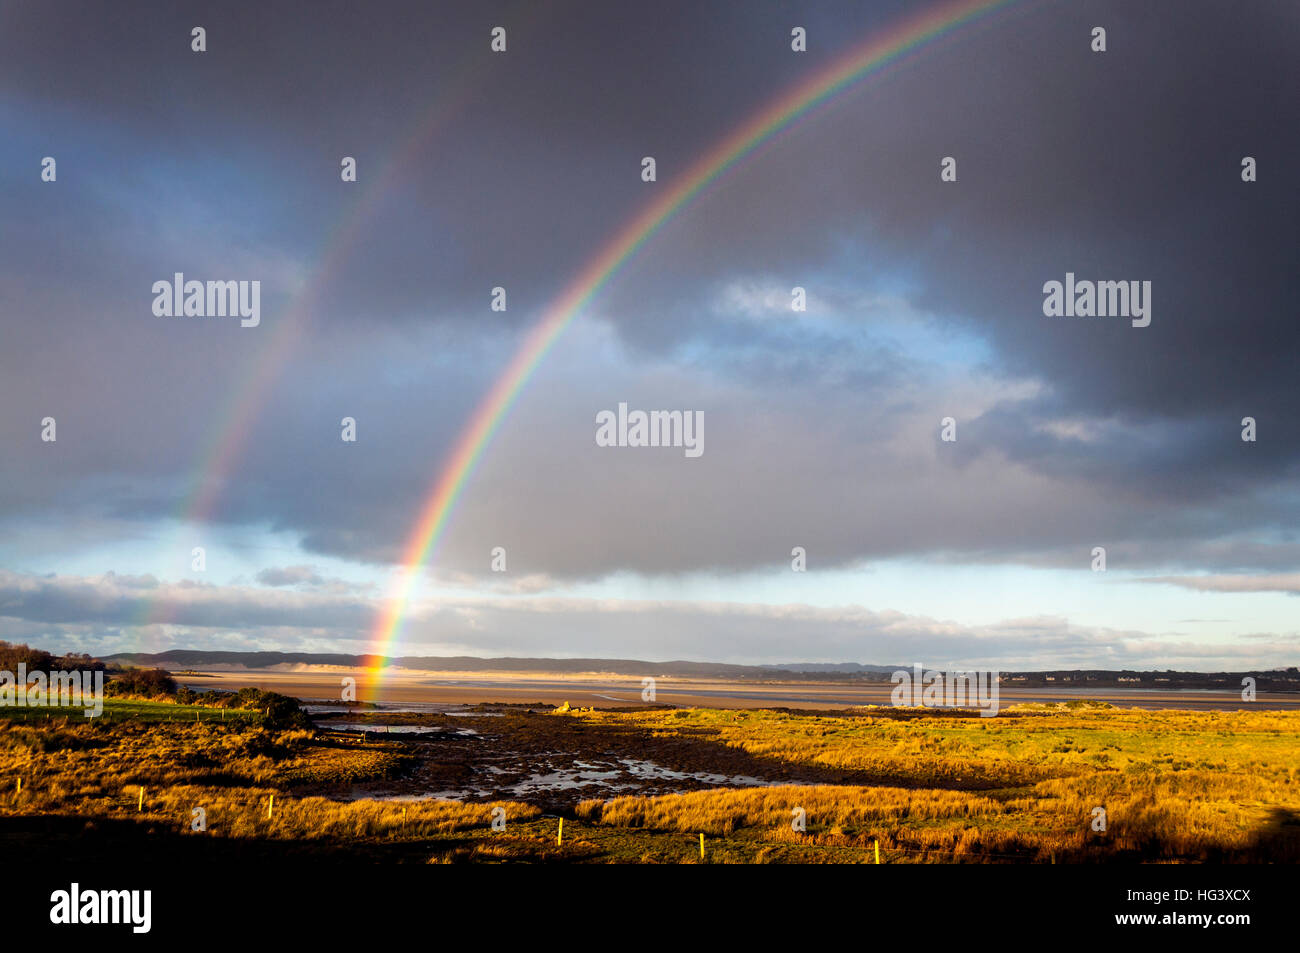 Donegal rainbow in landscape on Wild Atlantic Way - Stock Image